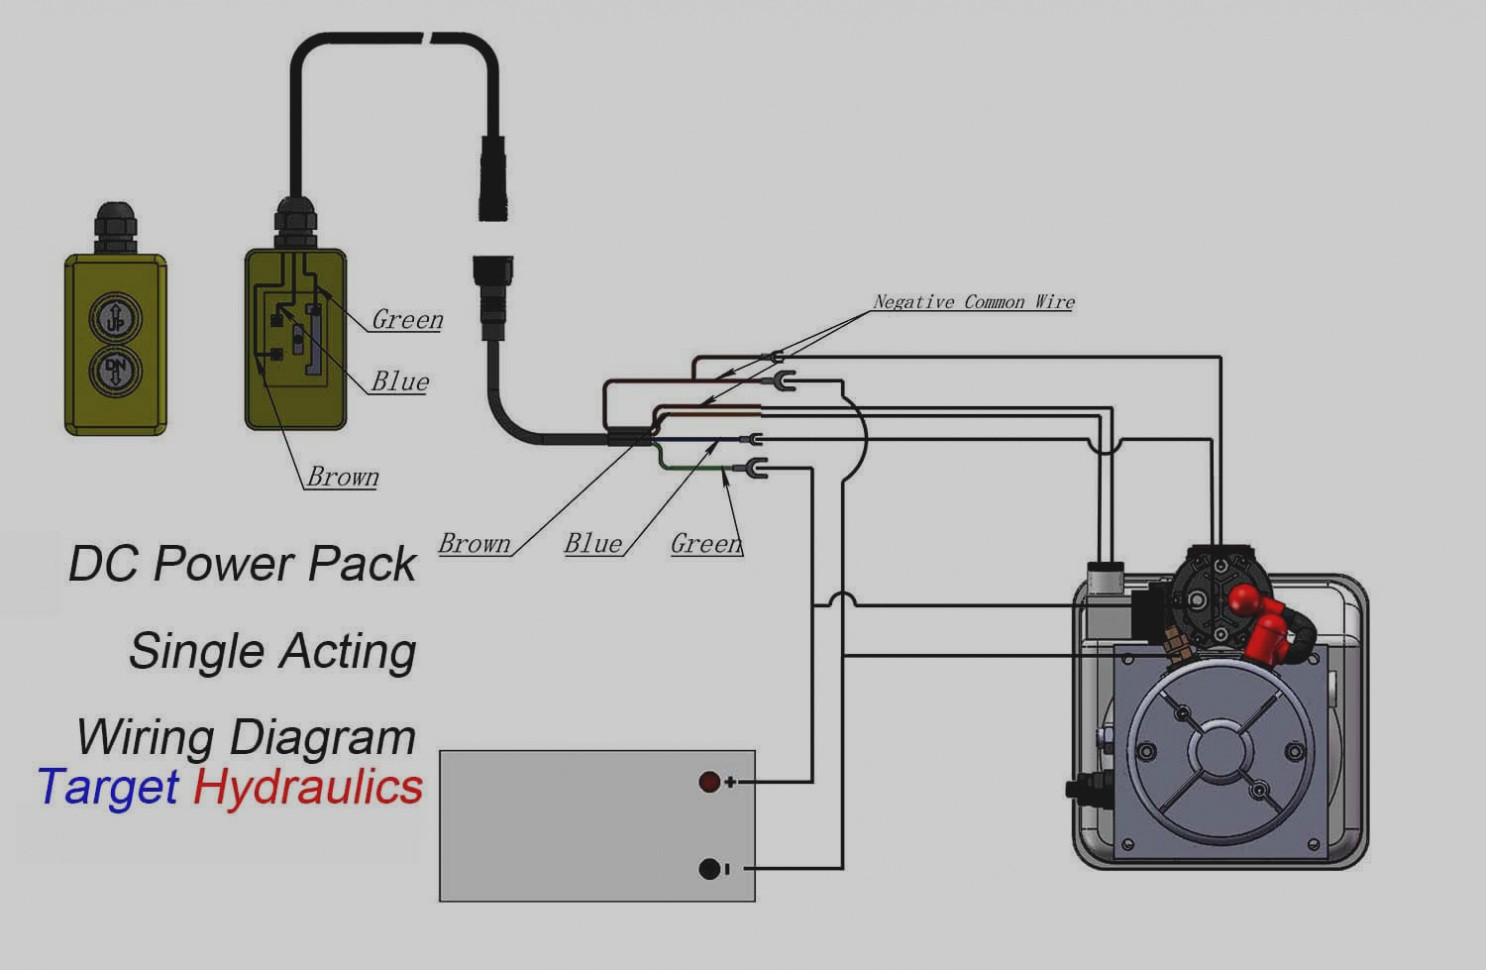 monarch wiring diagram schematics wiring diagrams u2022 rh seniorlivinguniversity co Monarch Dyna Jack Hydraulic Pump Monarch Hydraulics Replacement Parts